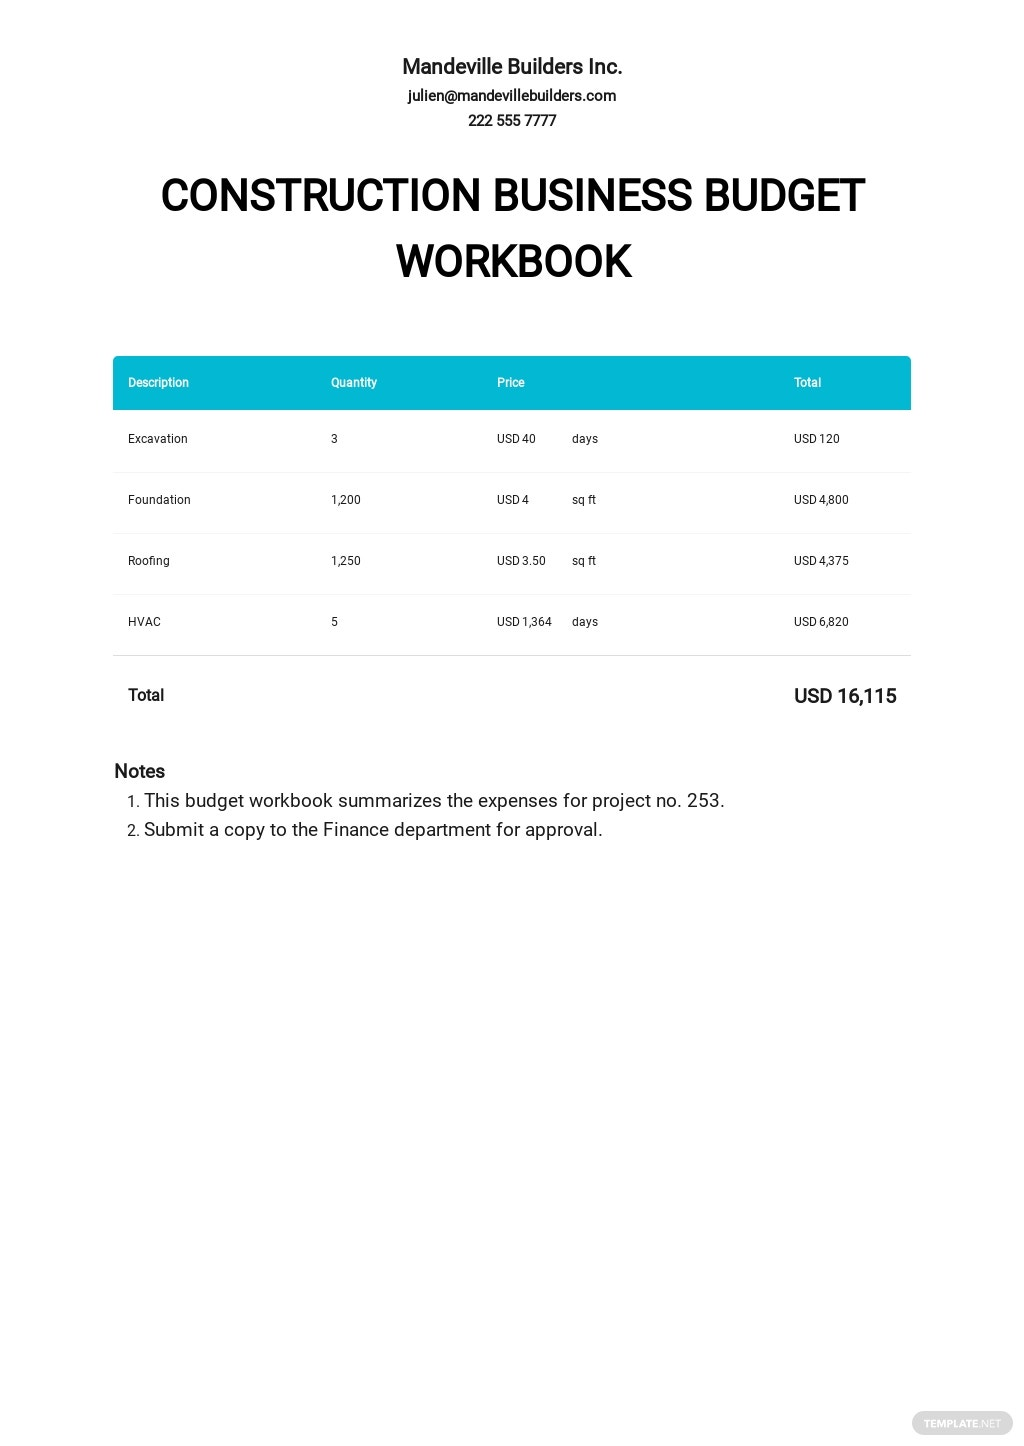 Construction Business Budget Workbook Template